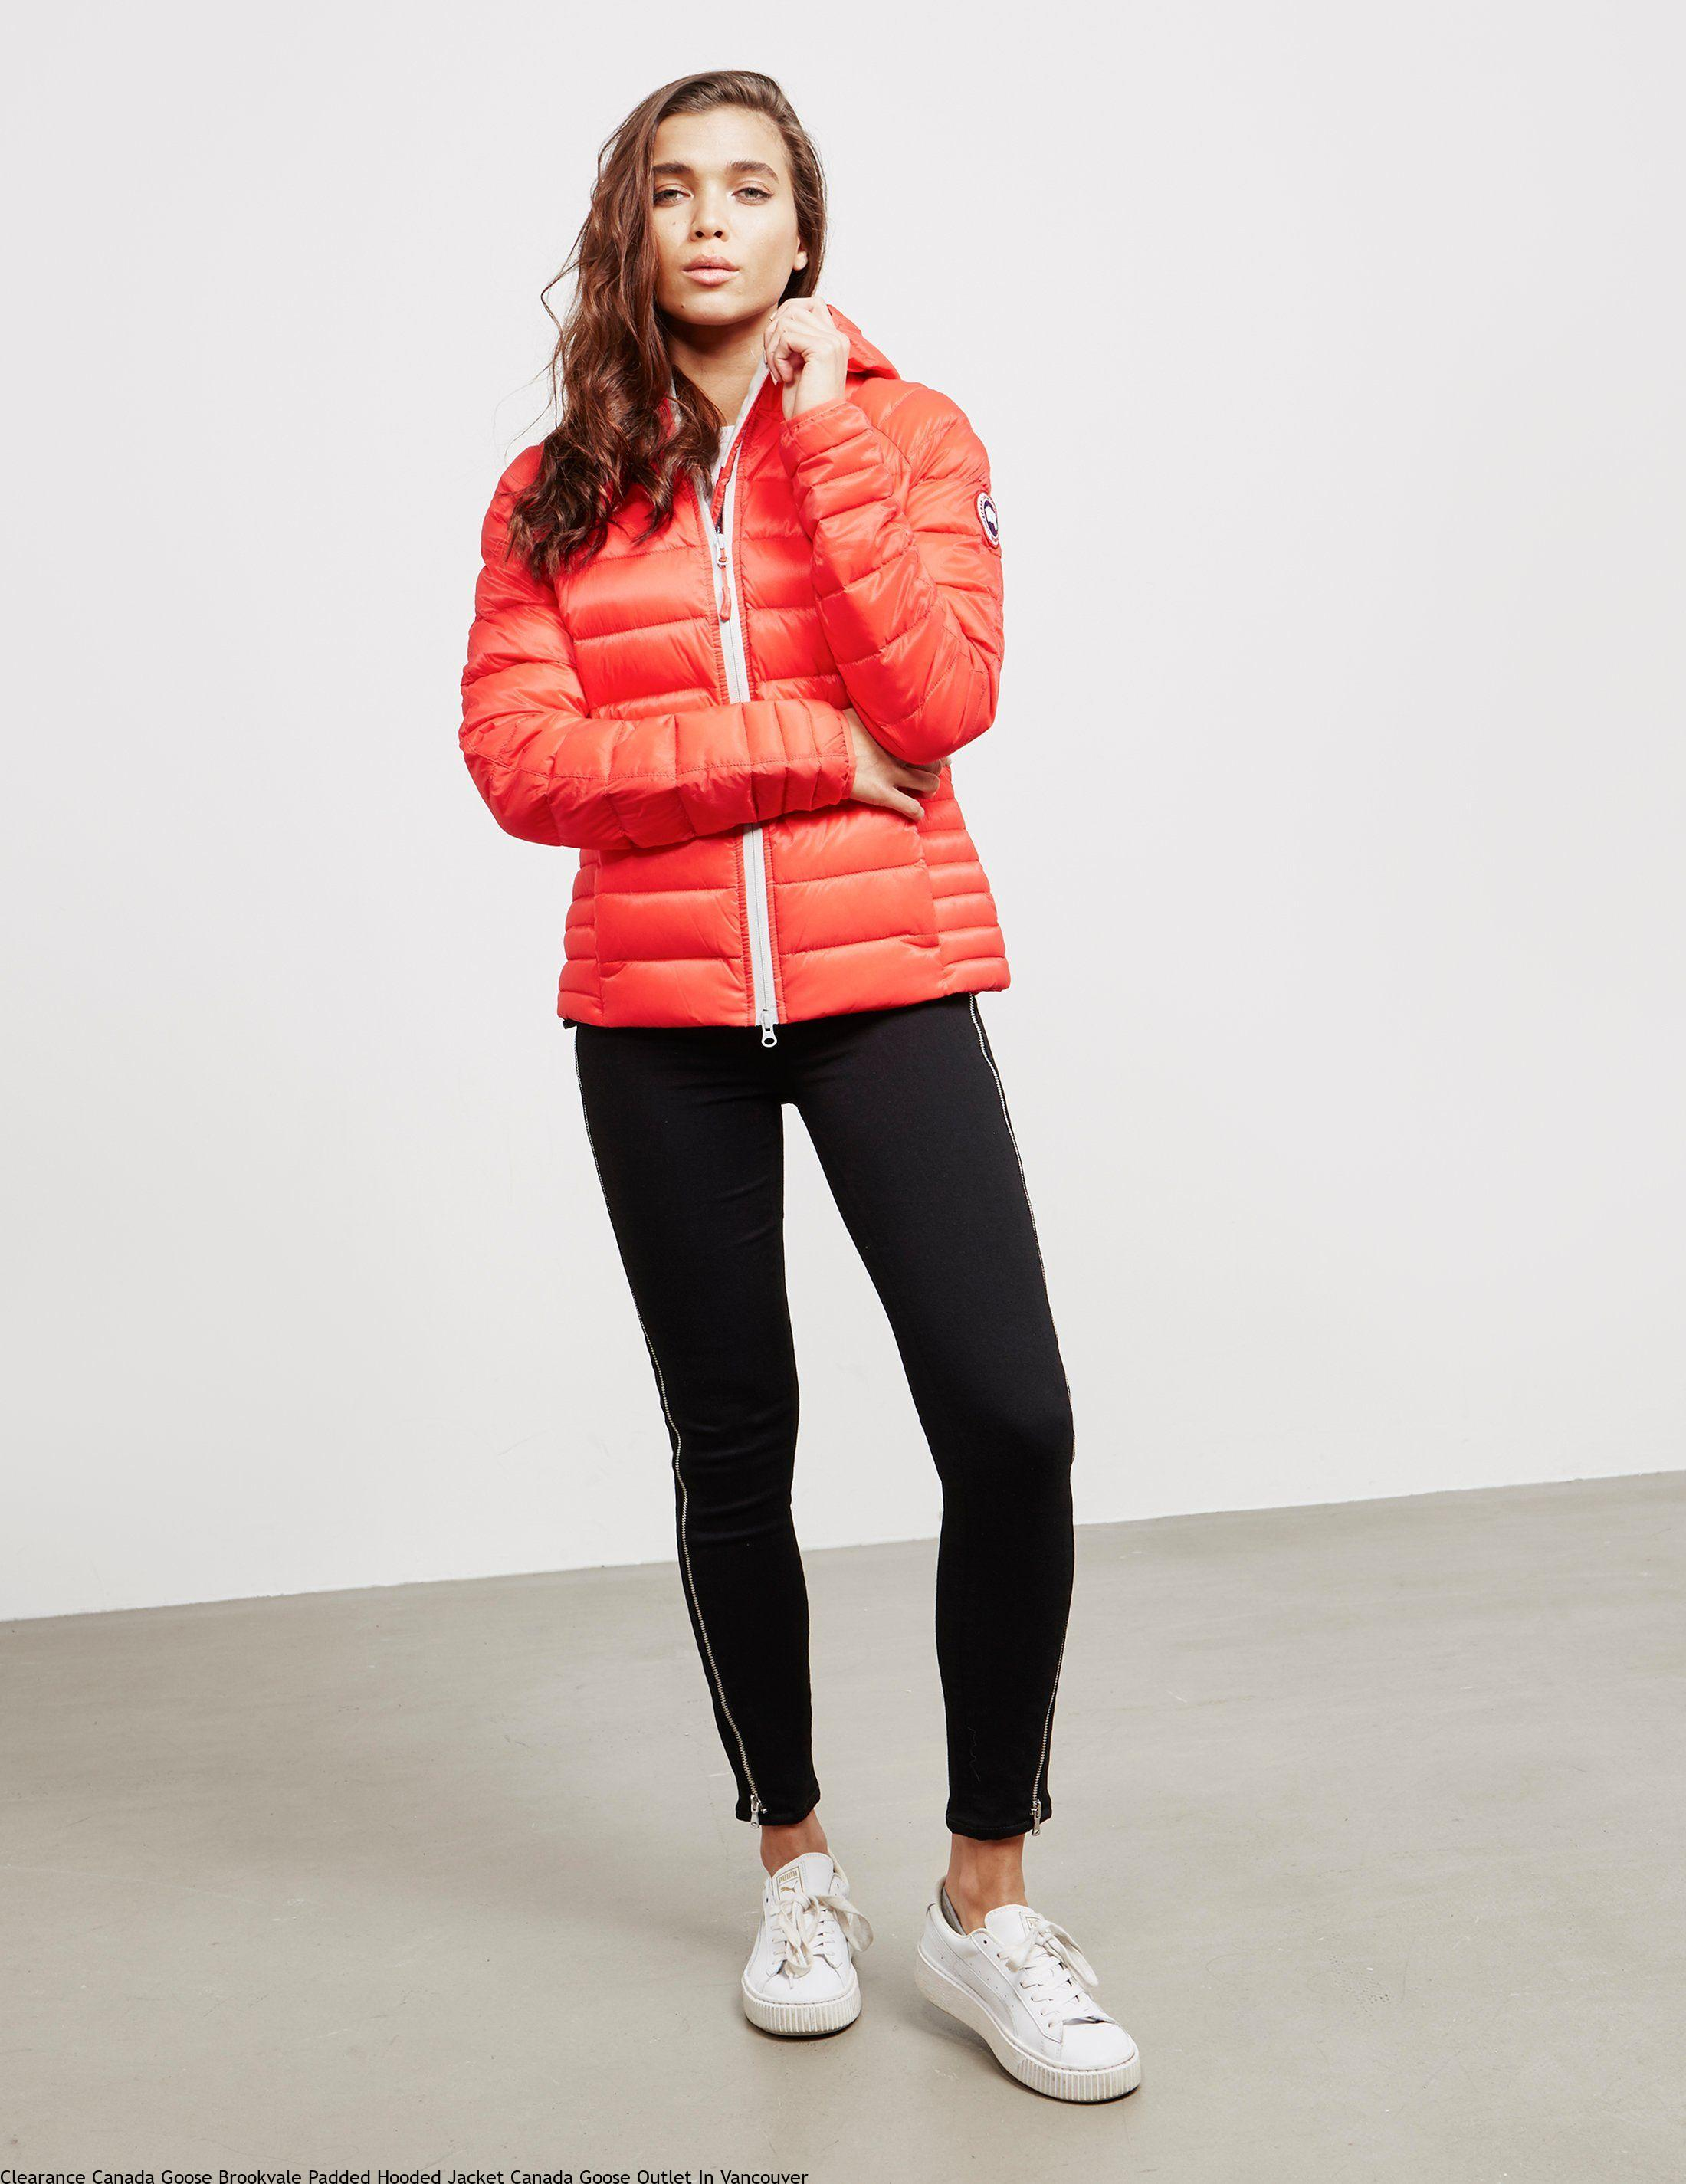 b182e14949f56 Clearance Canada Goose Brookvale Padded Hooded Jacket Canada Goose Outlet  In Vancouver